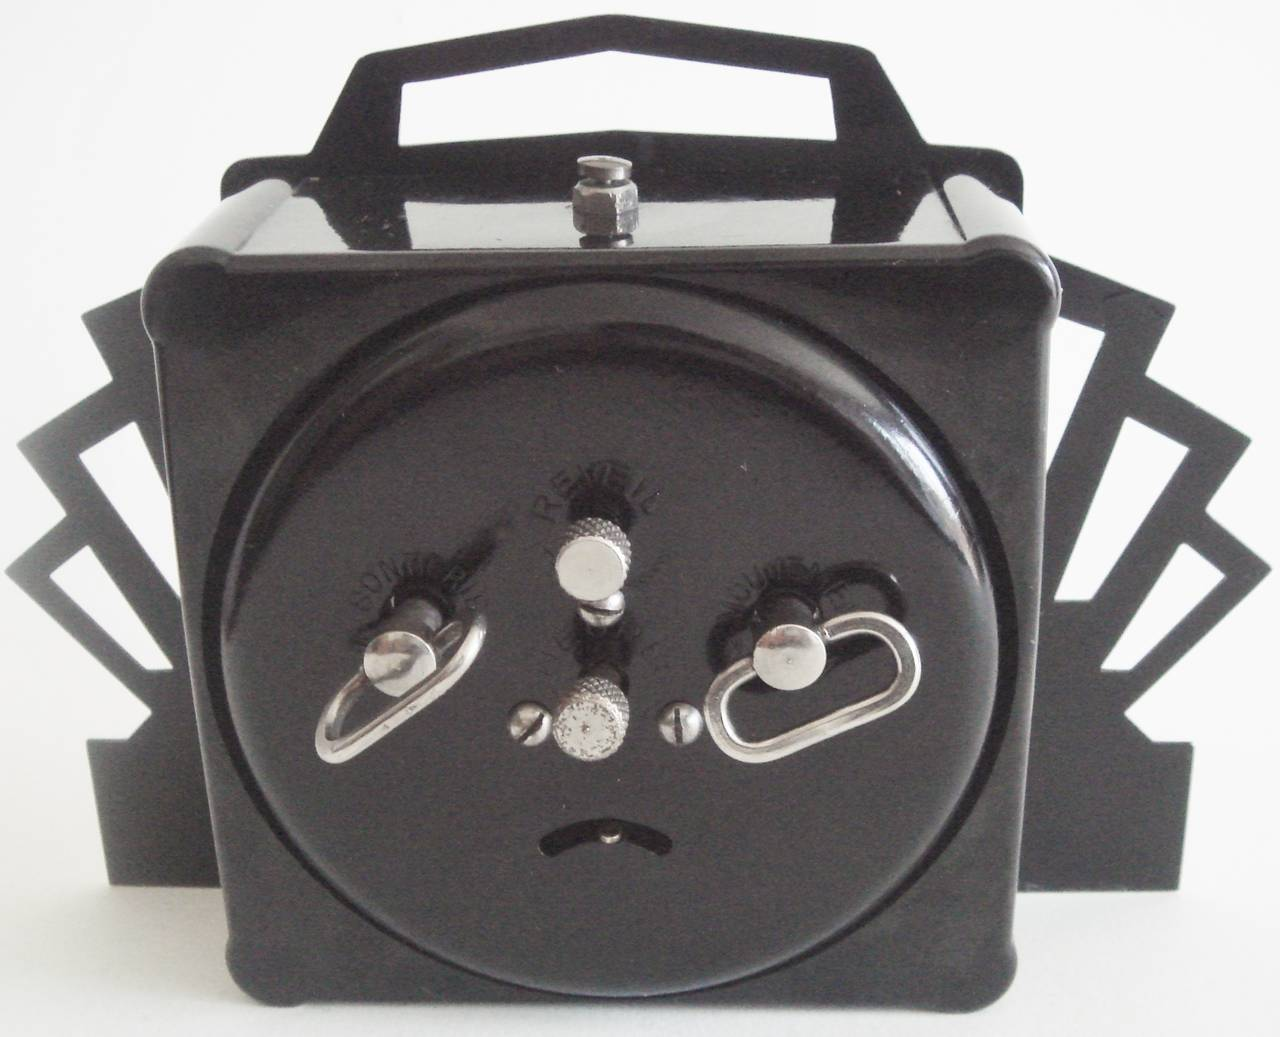 Metal French Ultra Art Deco Styled Chrome and Black Mechanical Alarm Clock by Blangy For Sale